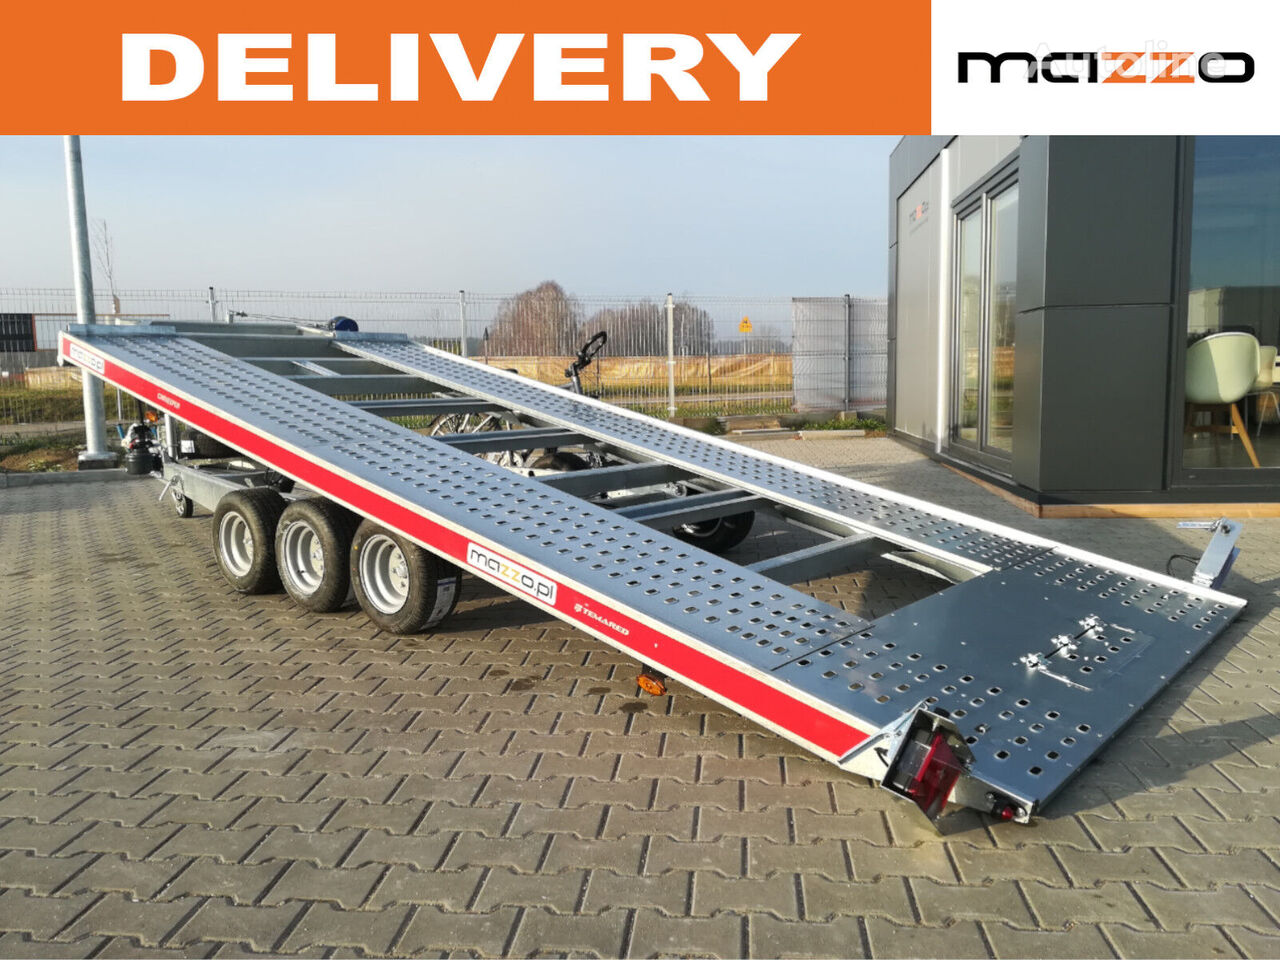 nový přívěs autotransportér 480x203cm 4820/3 3-axles Tilt trailer with hand pump!